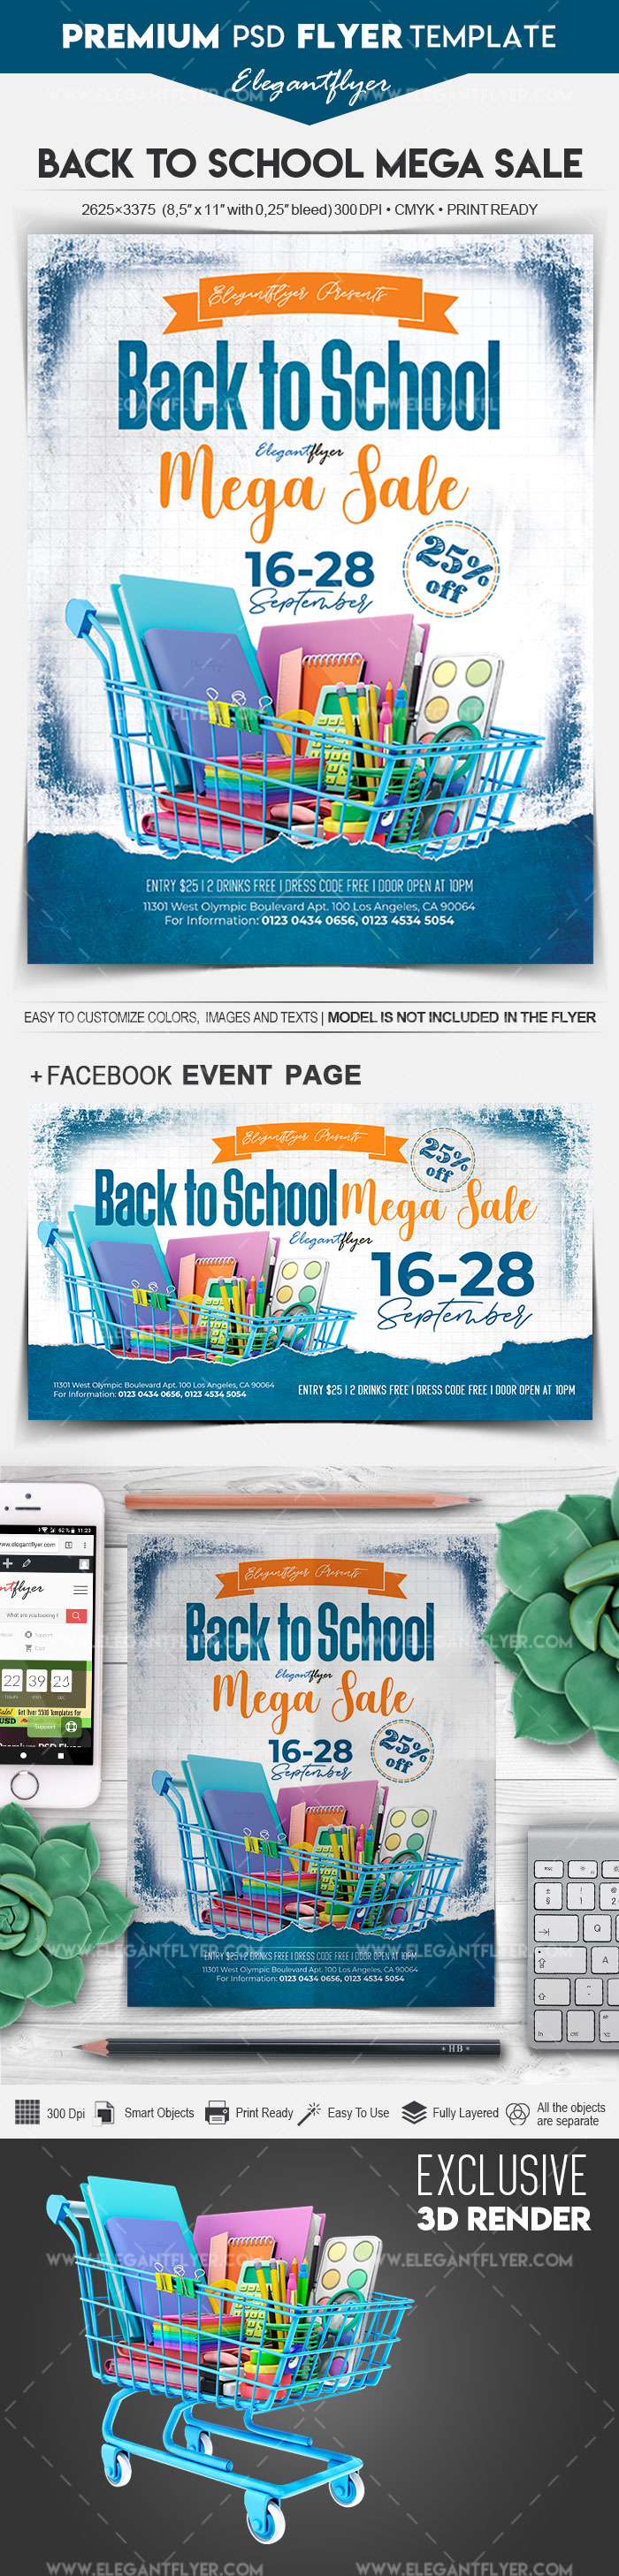 Back to School Mega Sale – Flyer PSD Template